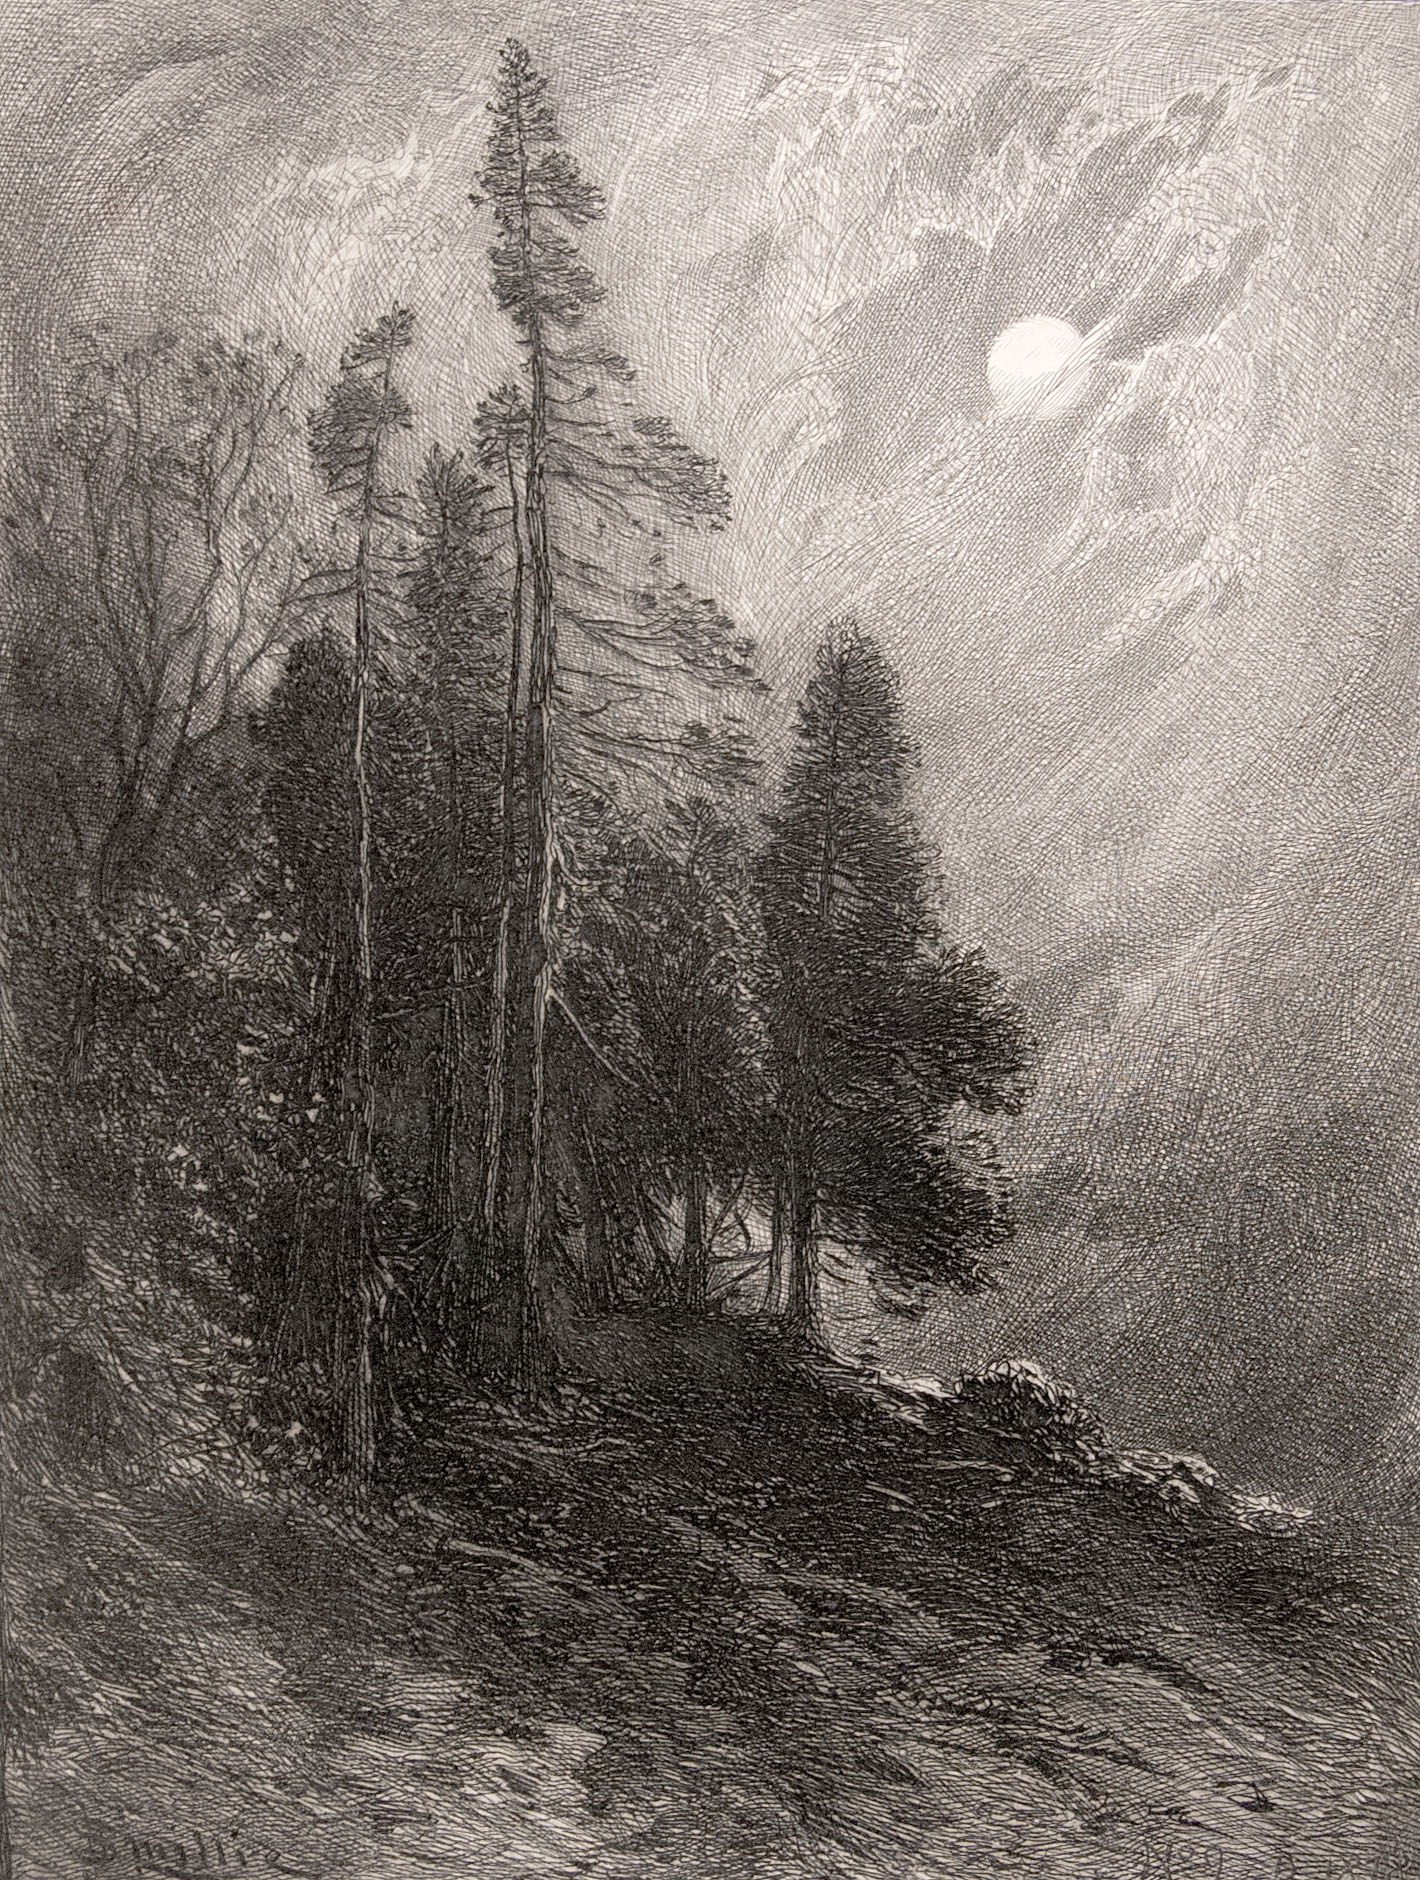 Cedars by Moonlight